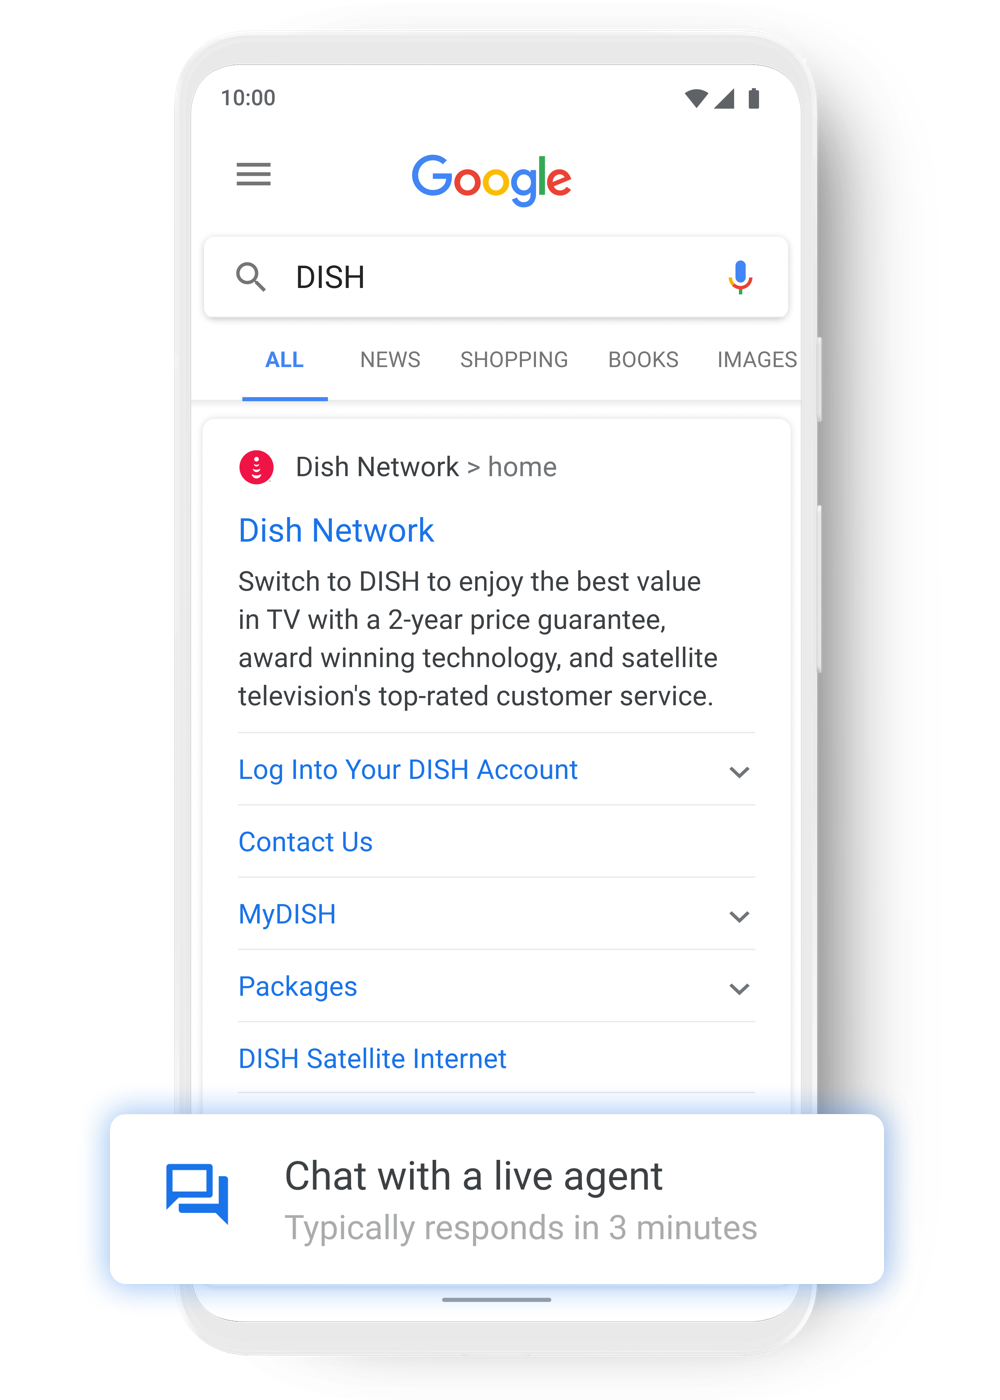 Customers chat with DISH through Google Search